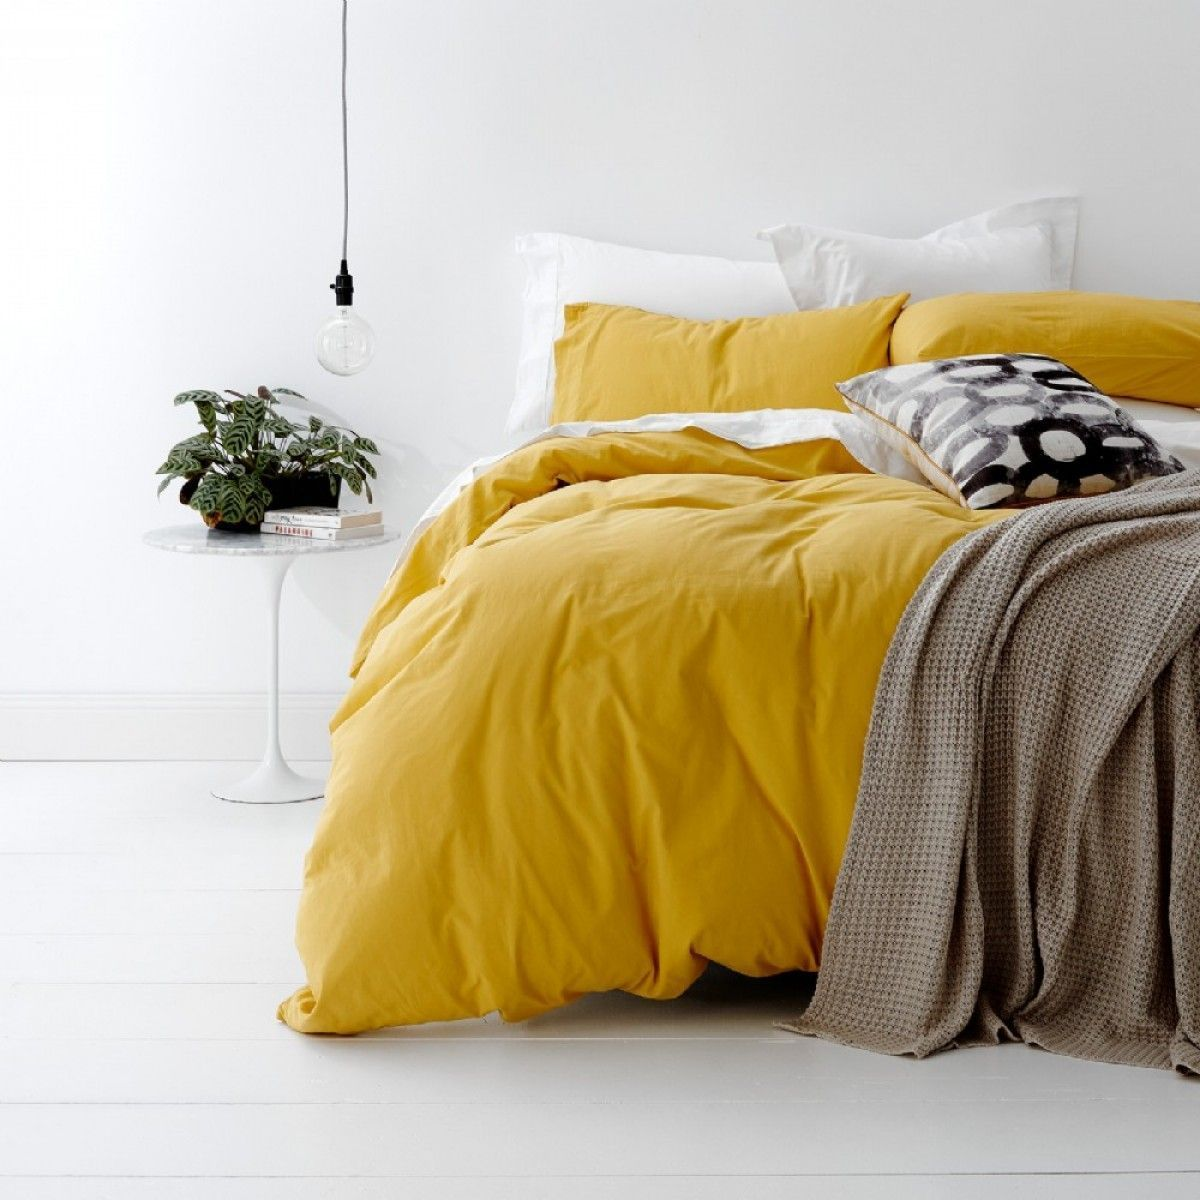 Pin By Eve On Bedrooms Bed Linens Luxury Yellow Bedding Yellow Room